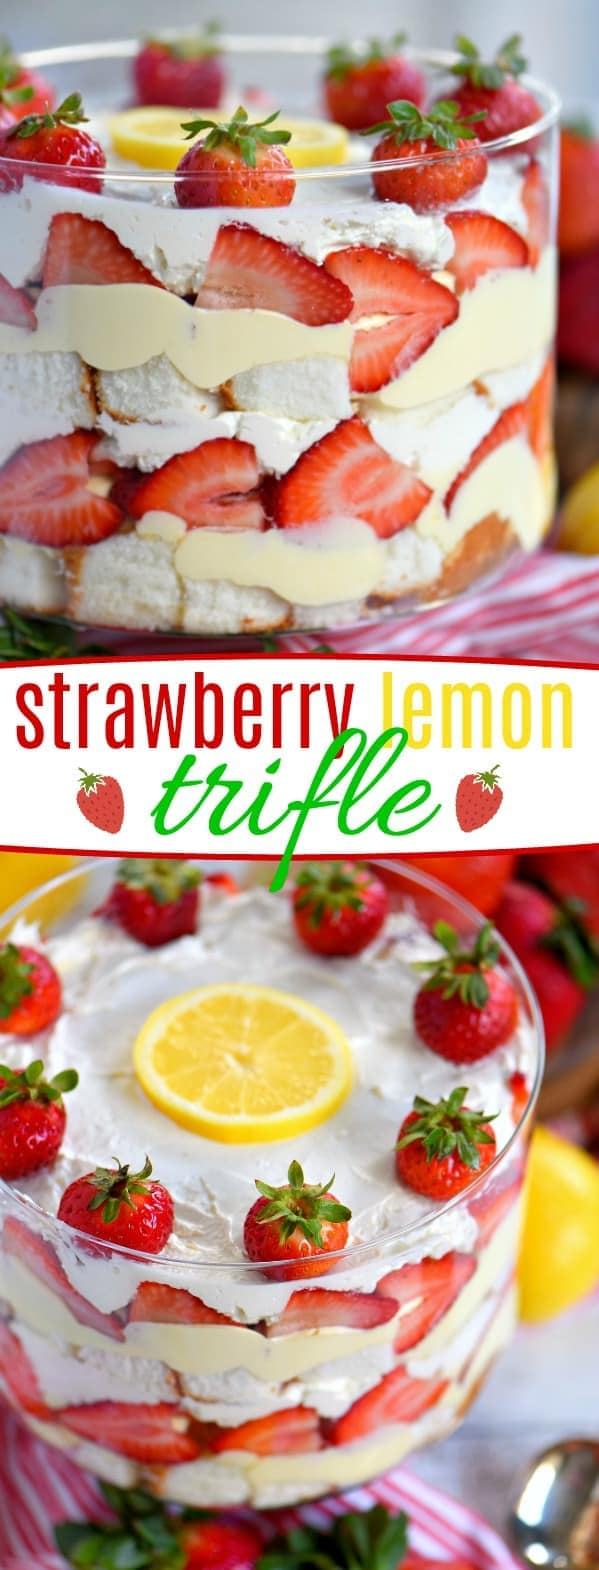 This strawberry and lemon trifle is what dreams are made of! An easy, no-bake recipe loaded with fresh strawberries, angel cake, and lemon pudding - it's sure to be the highlight of your party! Perfect for easy entertaining during spring and summer! // Mom On Timeout #strawberry #lemon #trifle #dessert #easy #summer #entertain #spring #desserts #ad